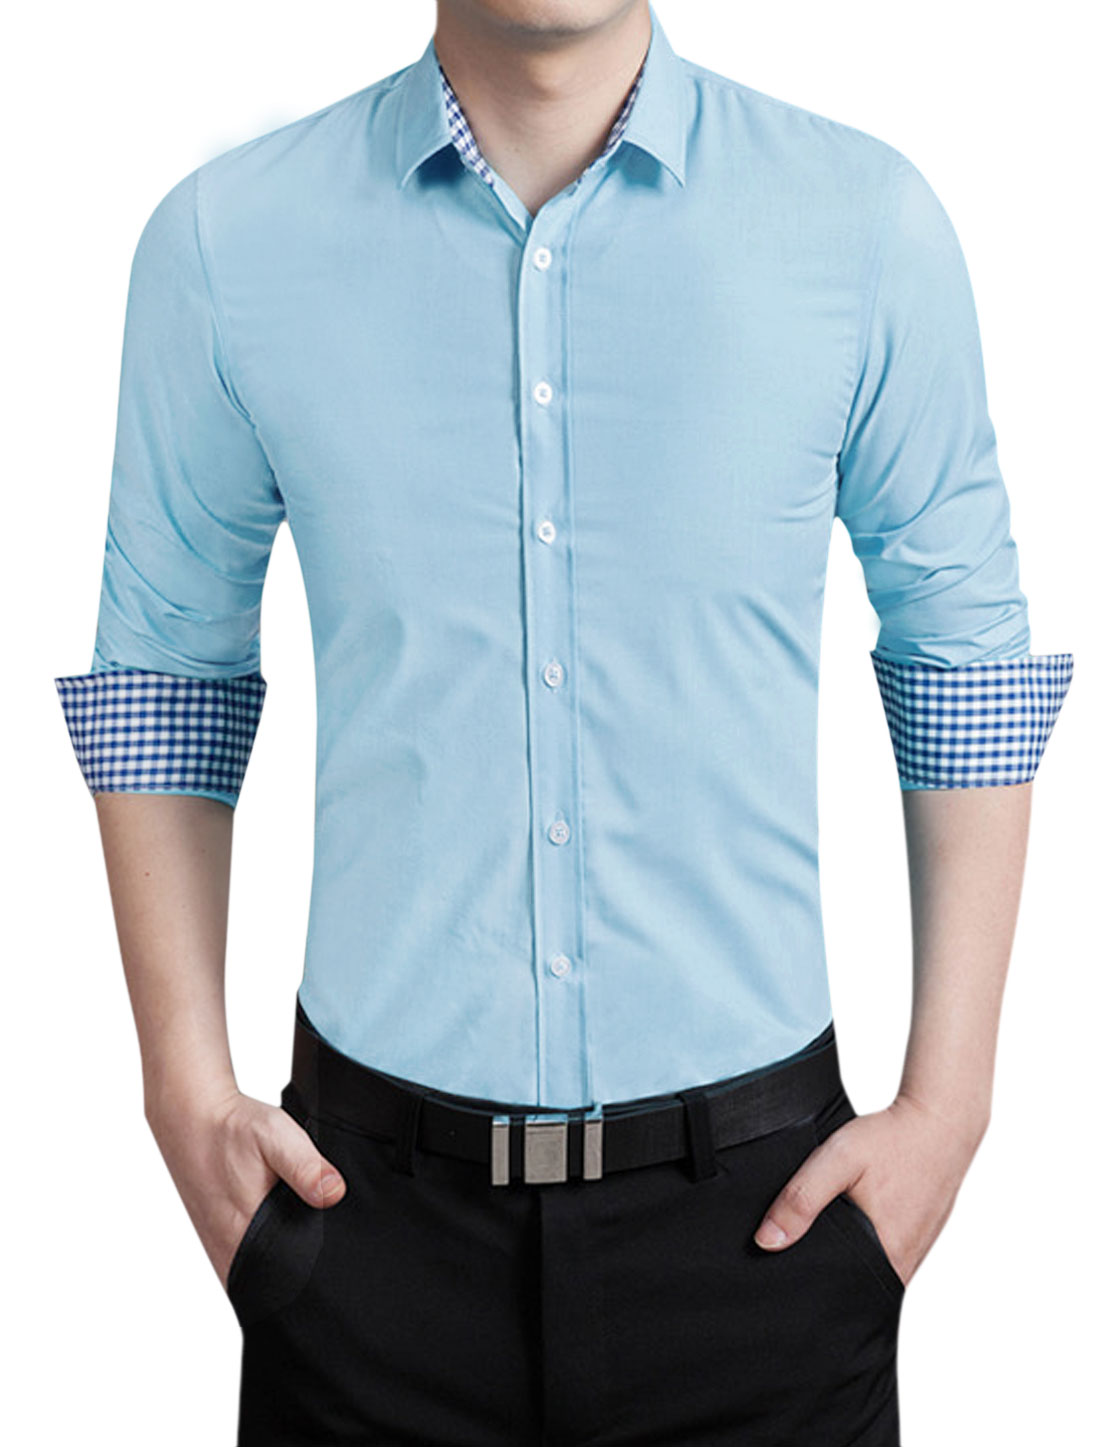 Men Long Sleeves Round Edge Form Fitting Shirt Sky Blue M